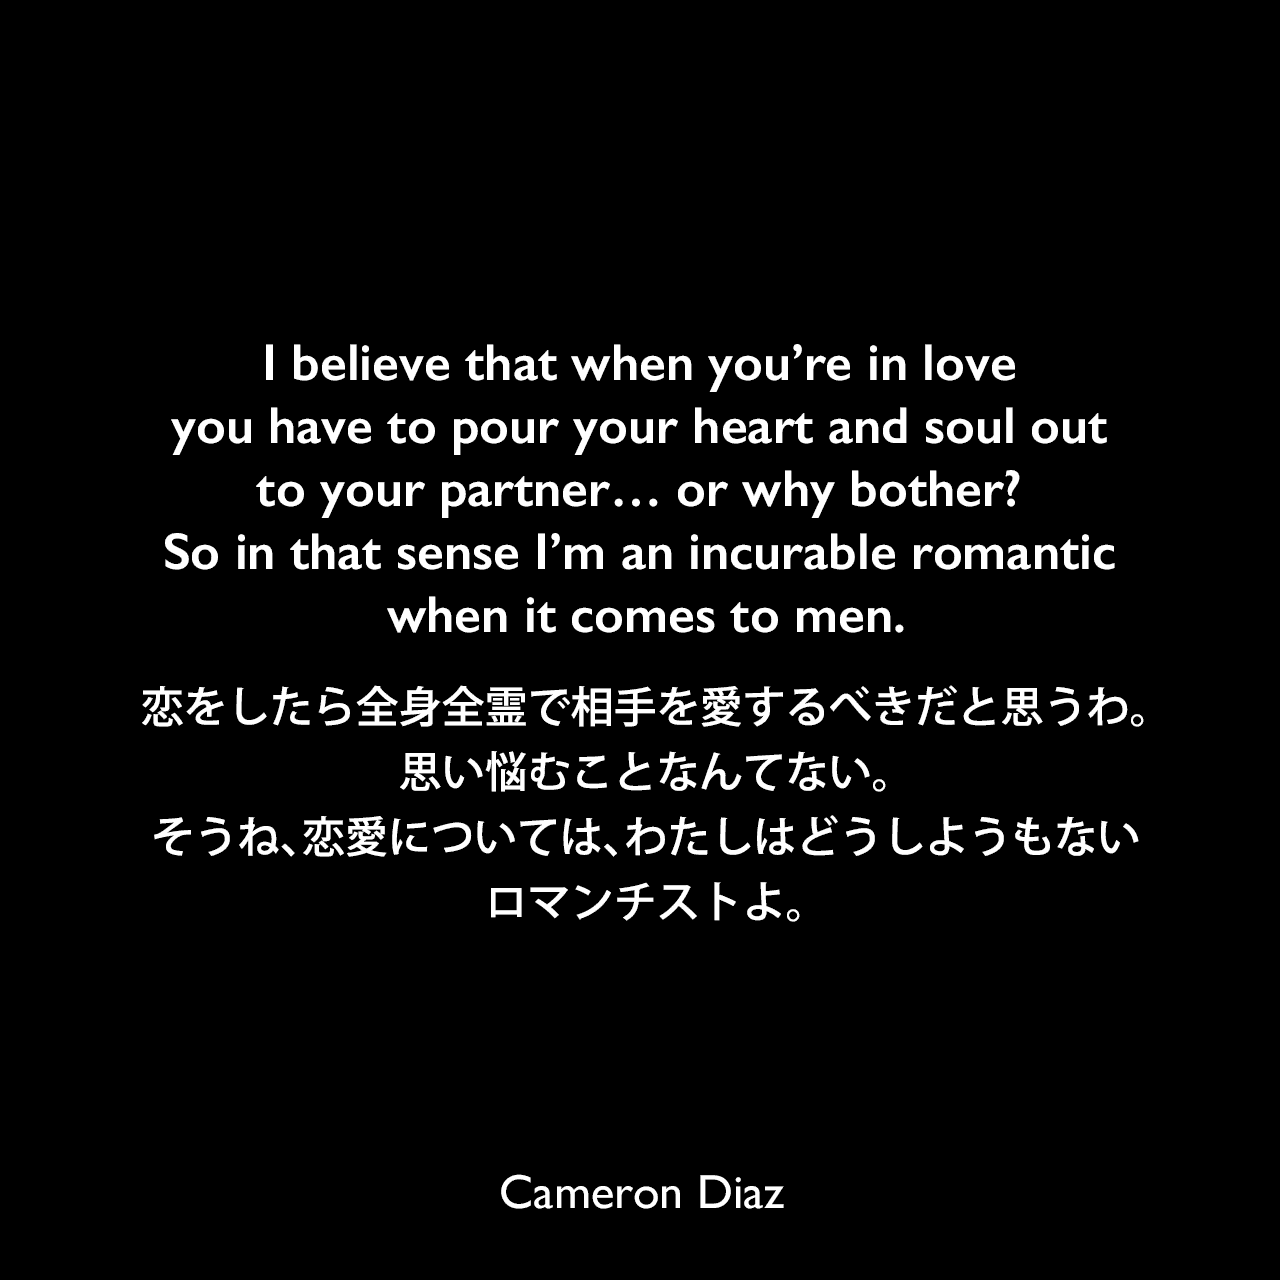 I believe that when you're in love you have to pour your heart and soul out to your partner… or why bother? So in that sense I'm an incurable romantic when it comes to men.恋をしたら全身全霊で相手を愛するべきだと思うわ。思い悩むことなんてない。そうね、恋愛については、わたしはどうしようもないロマンチストよ。Cameron Diaz